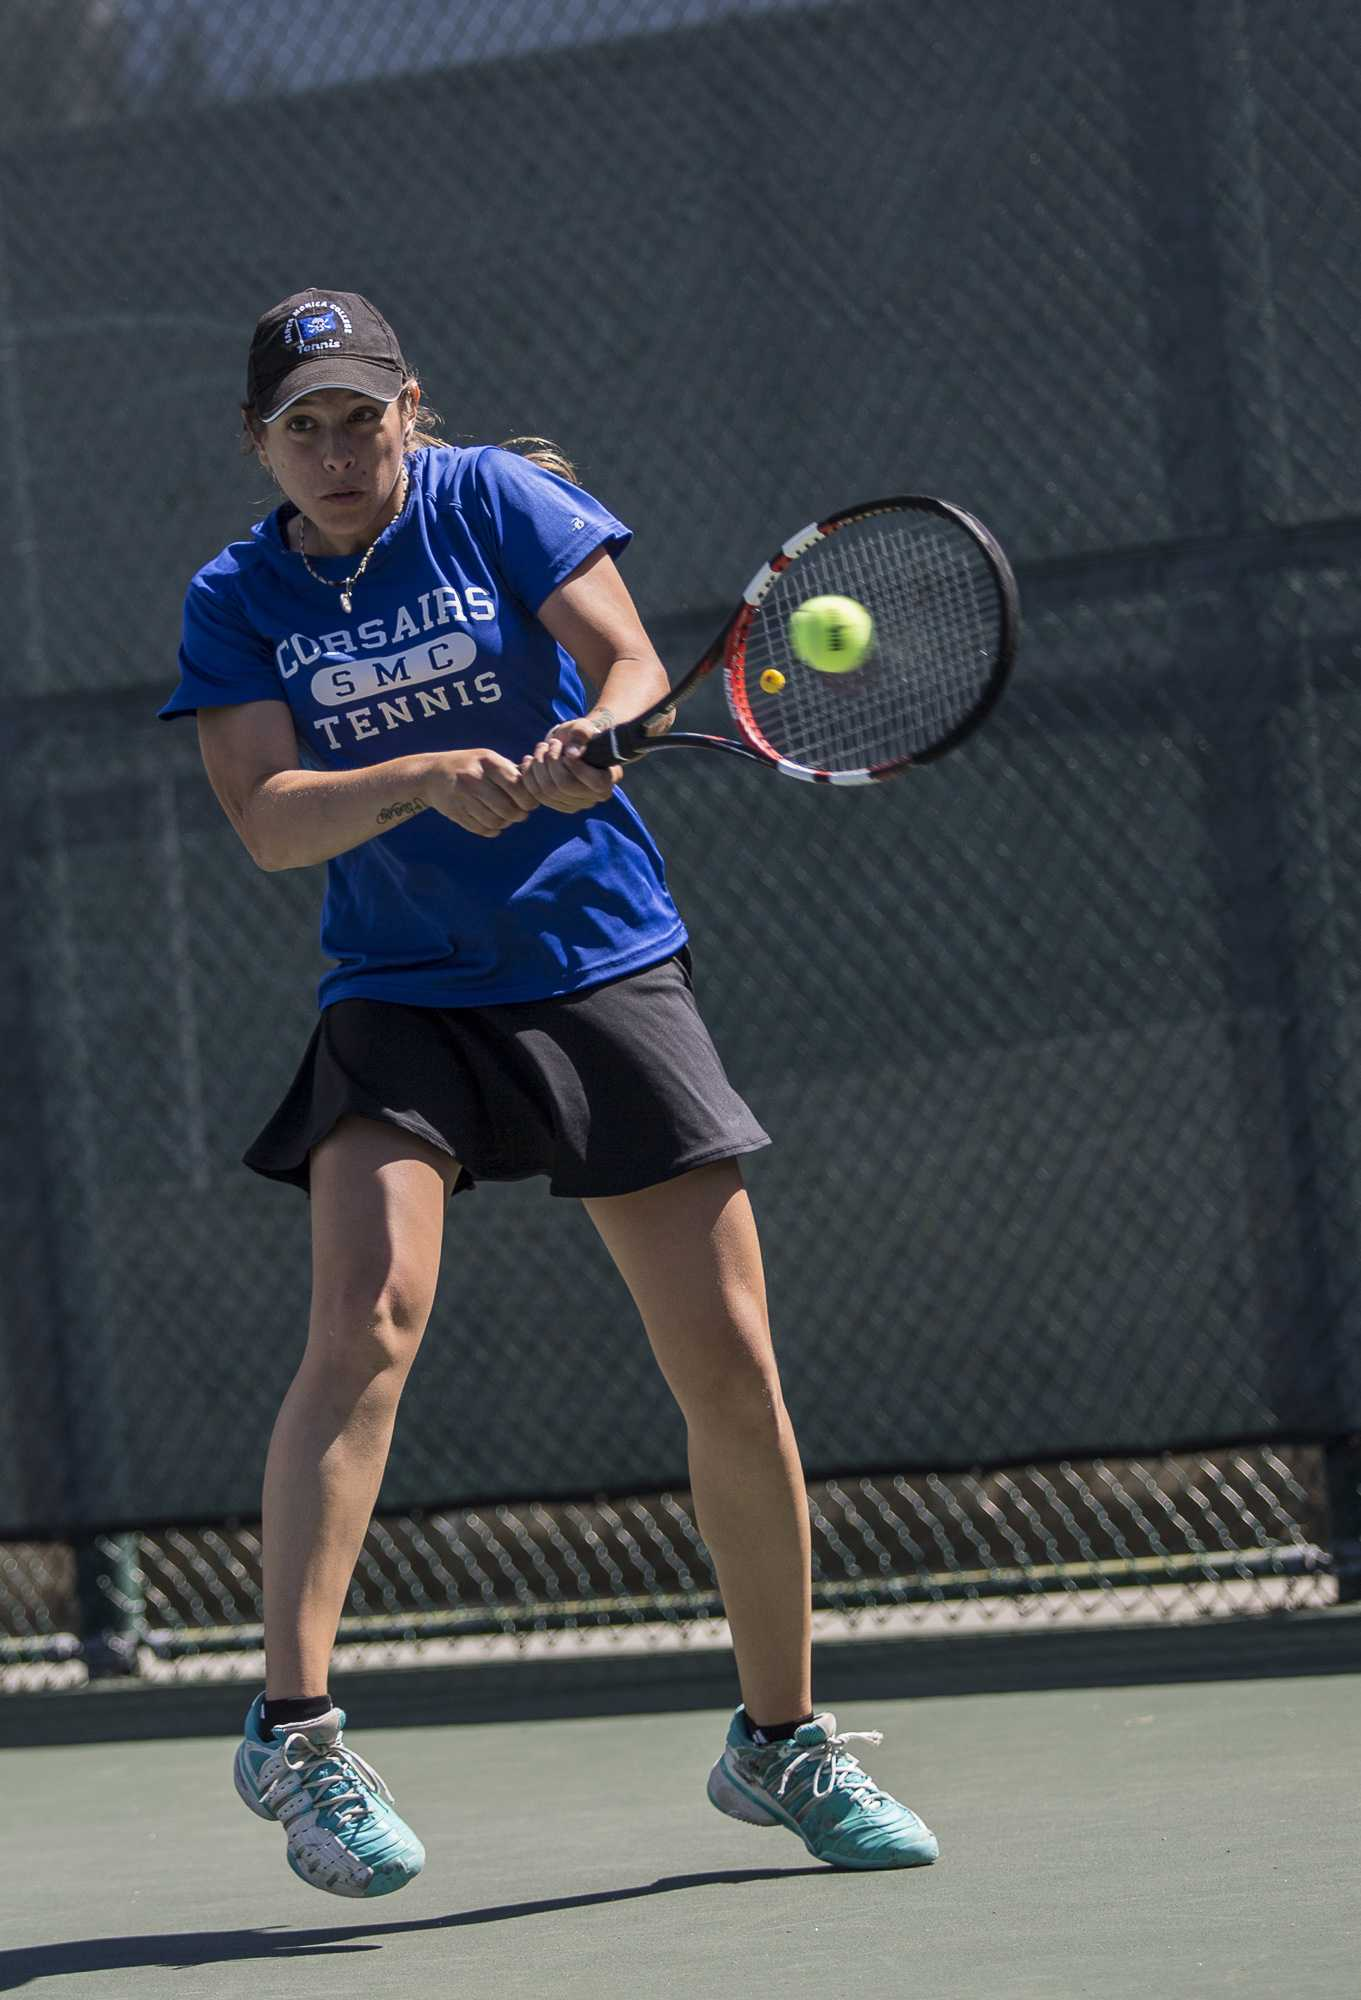 Santa Monica College Corsair sophomore Mayra Jovic (#1, singles) nails a backhand stroke at her Ventura College Pirate opponent during her 2 – 0 (6-0, 6-0) set victory which was part of the Corsairs 7 – 1 blowout victory over the Ventura College Pirates at the Ocean View Park Tennis Courts in Santa Monica Calif., on Thursday, March 23 2017. (Corsair Photo: Matthew Martin)